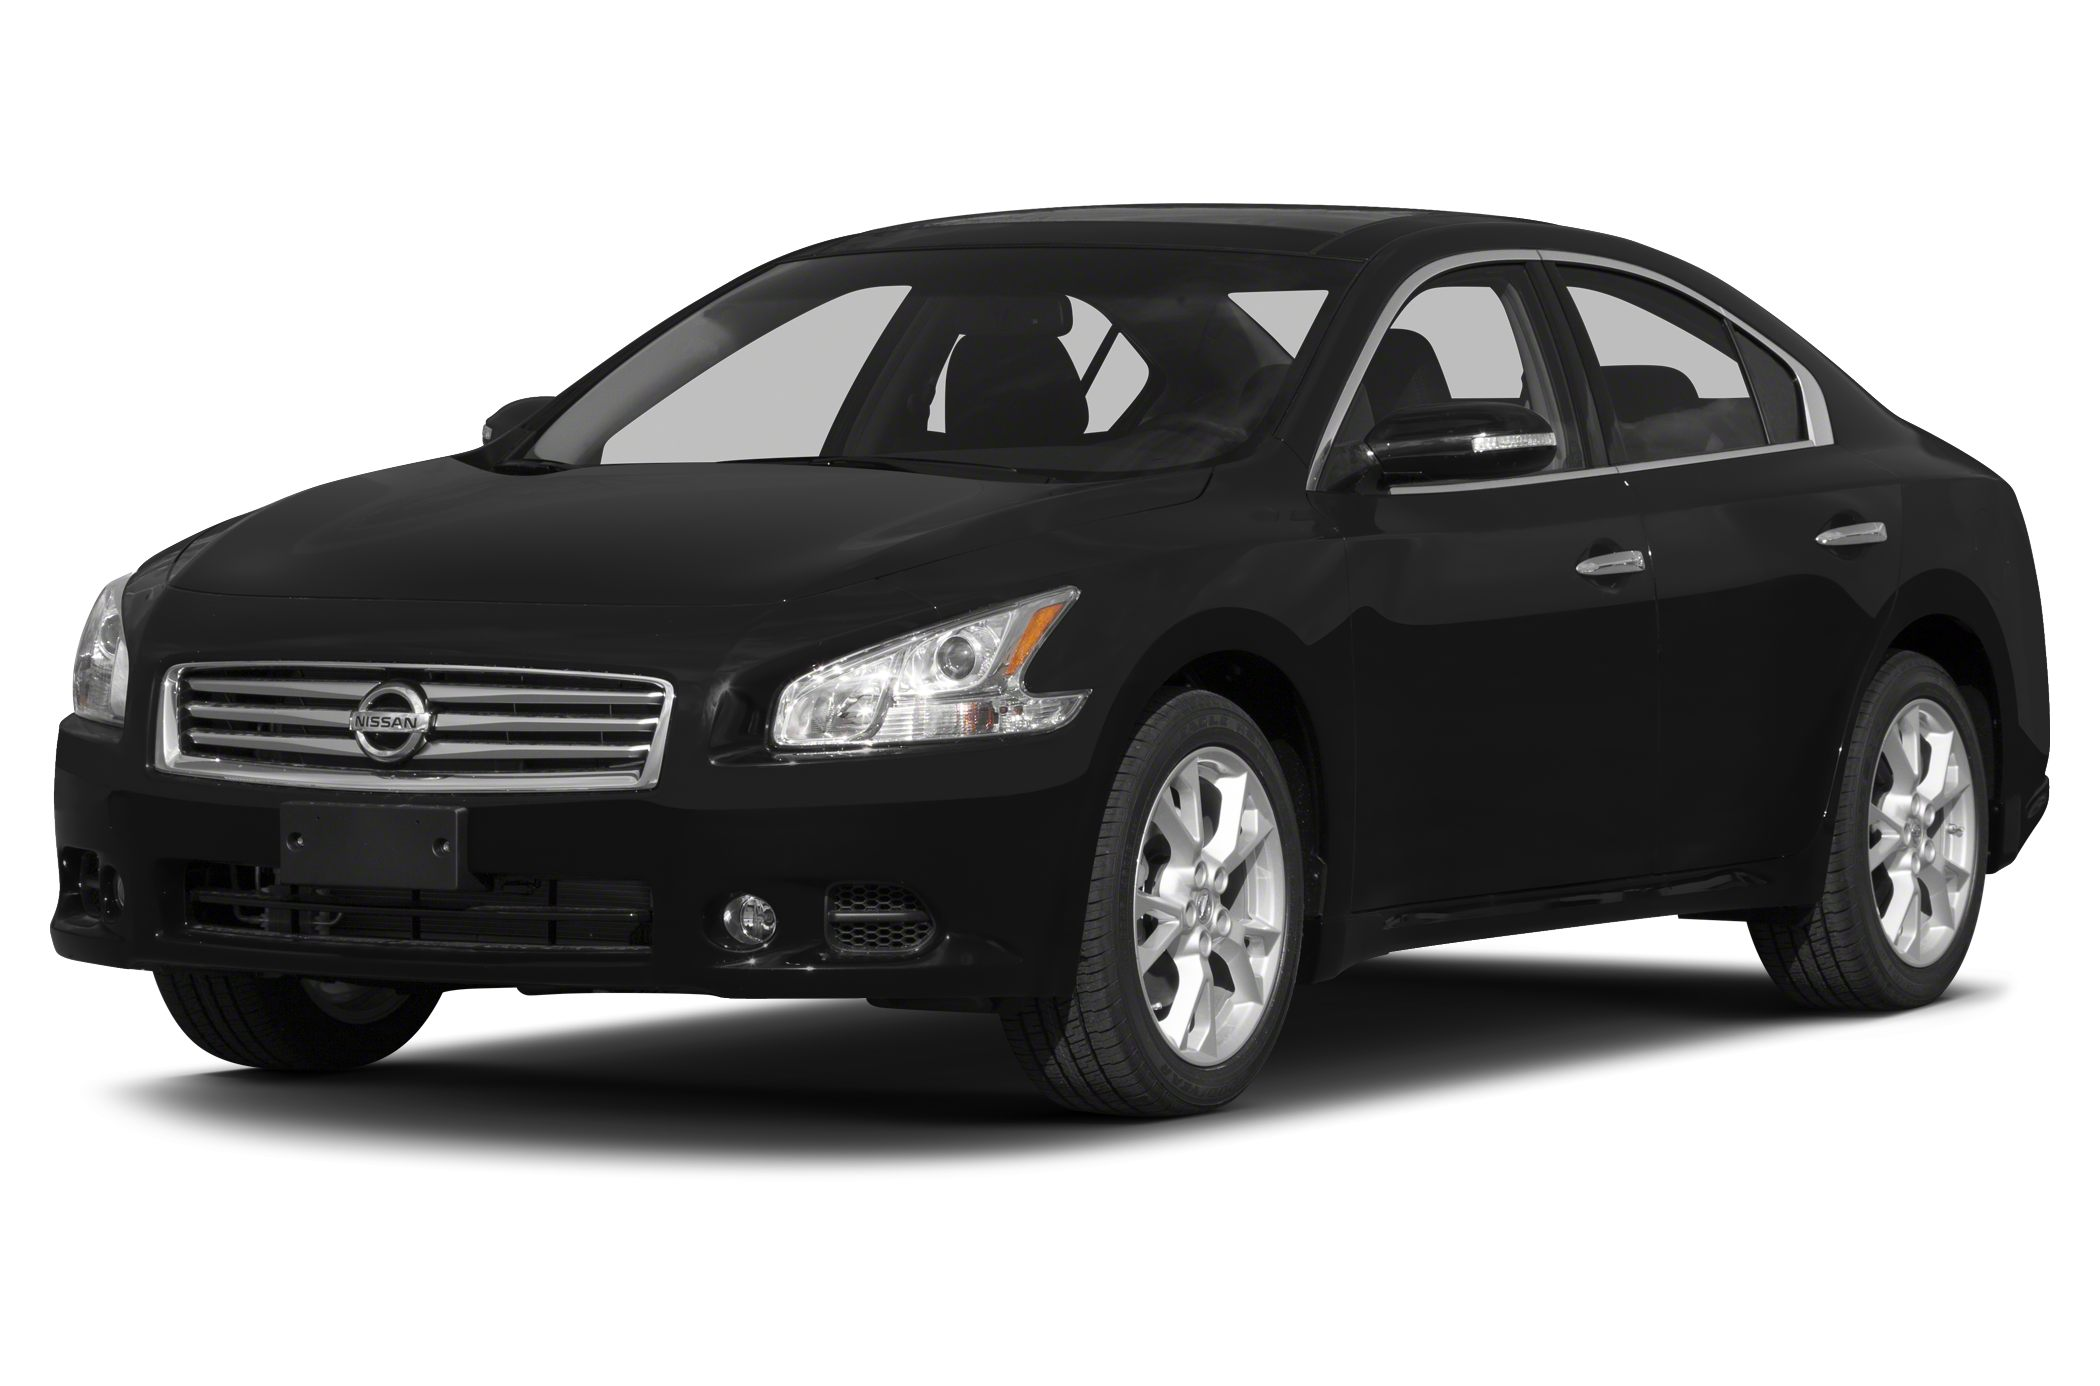 2013 Nissan Maxima SV Sedan for sale in Brandon for $22,950 with 48,490 miles